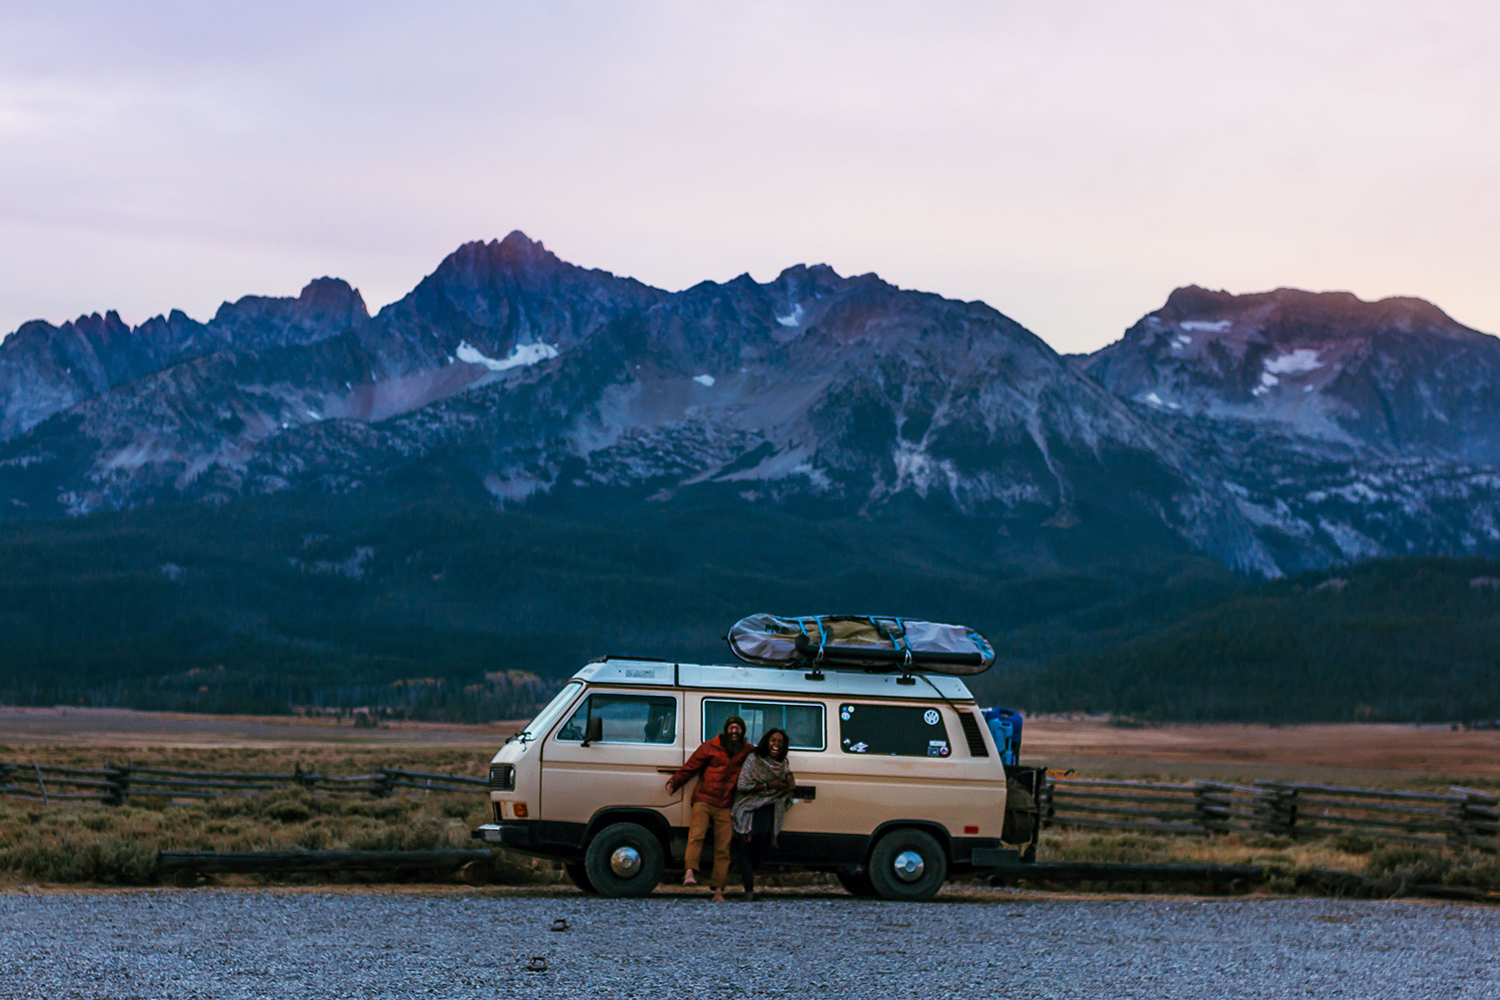 Noami and her husband Dustin in front of their VW Vanagon at blue hour